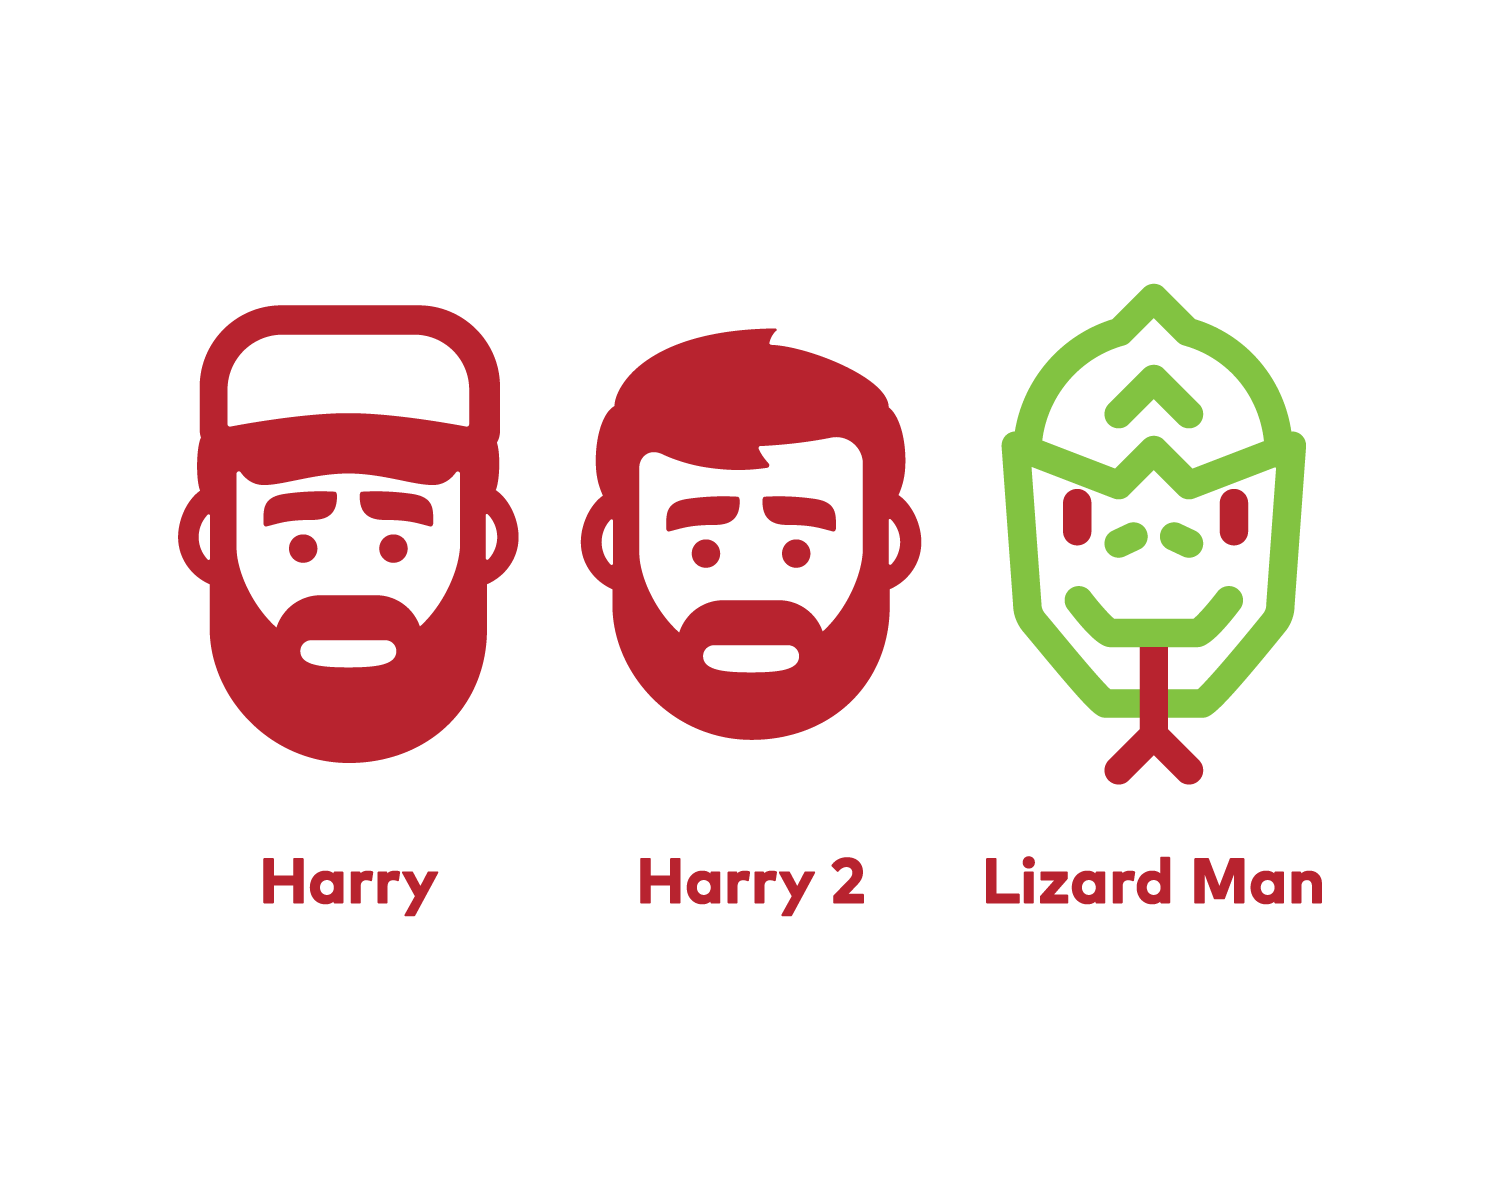 harryandharry2_icons.png